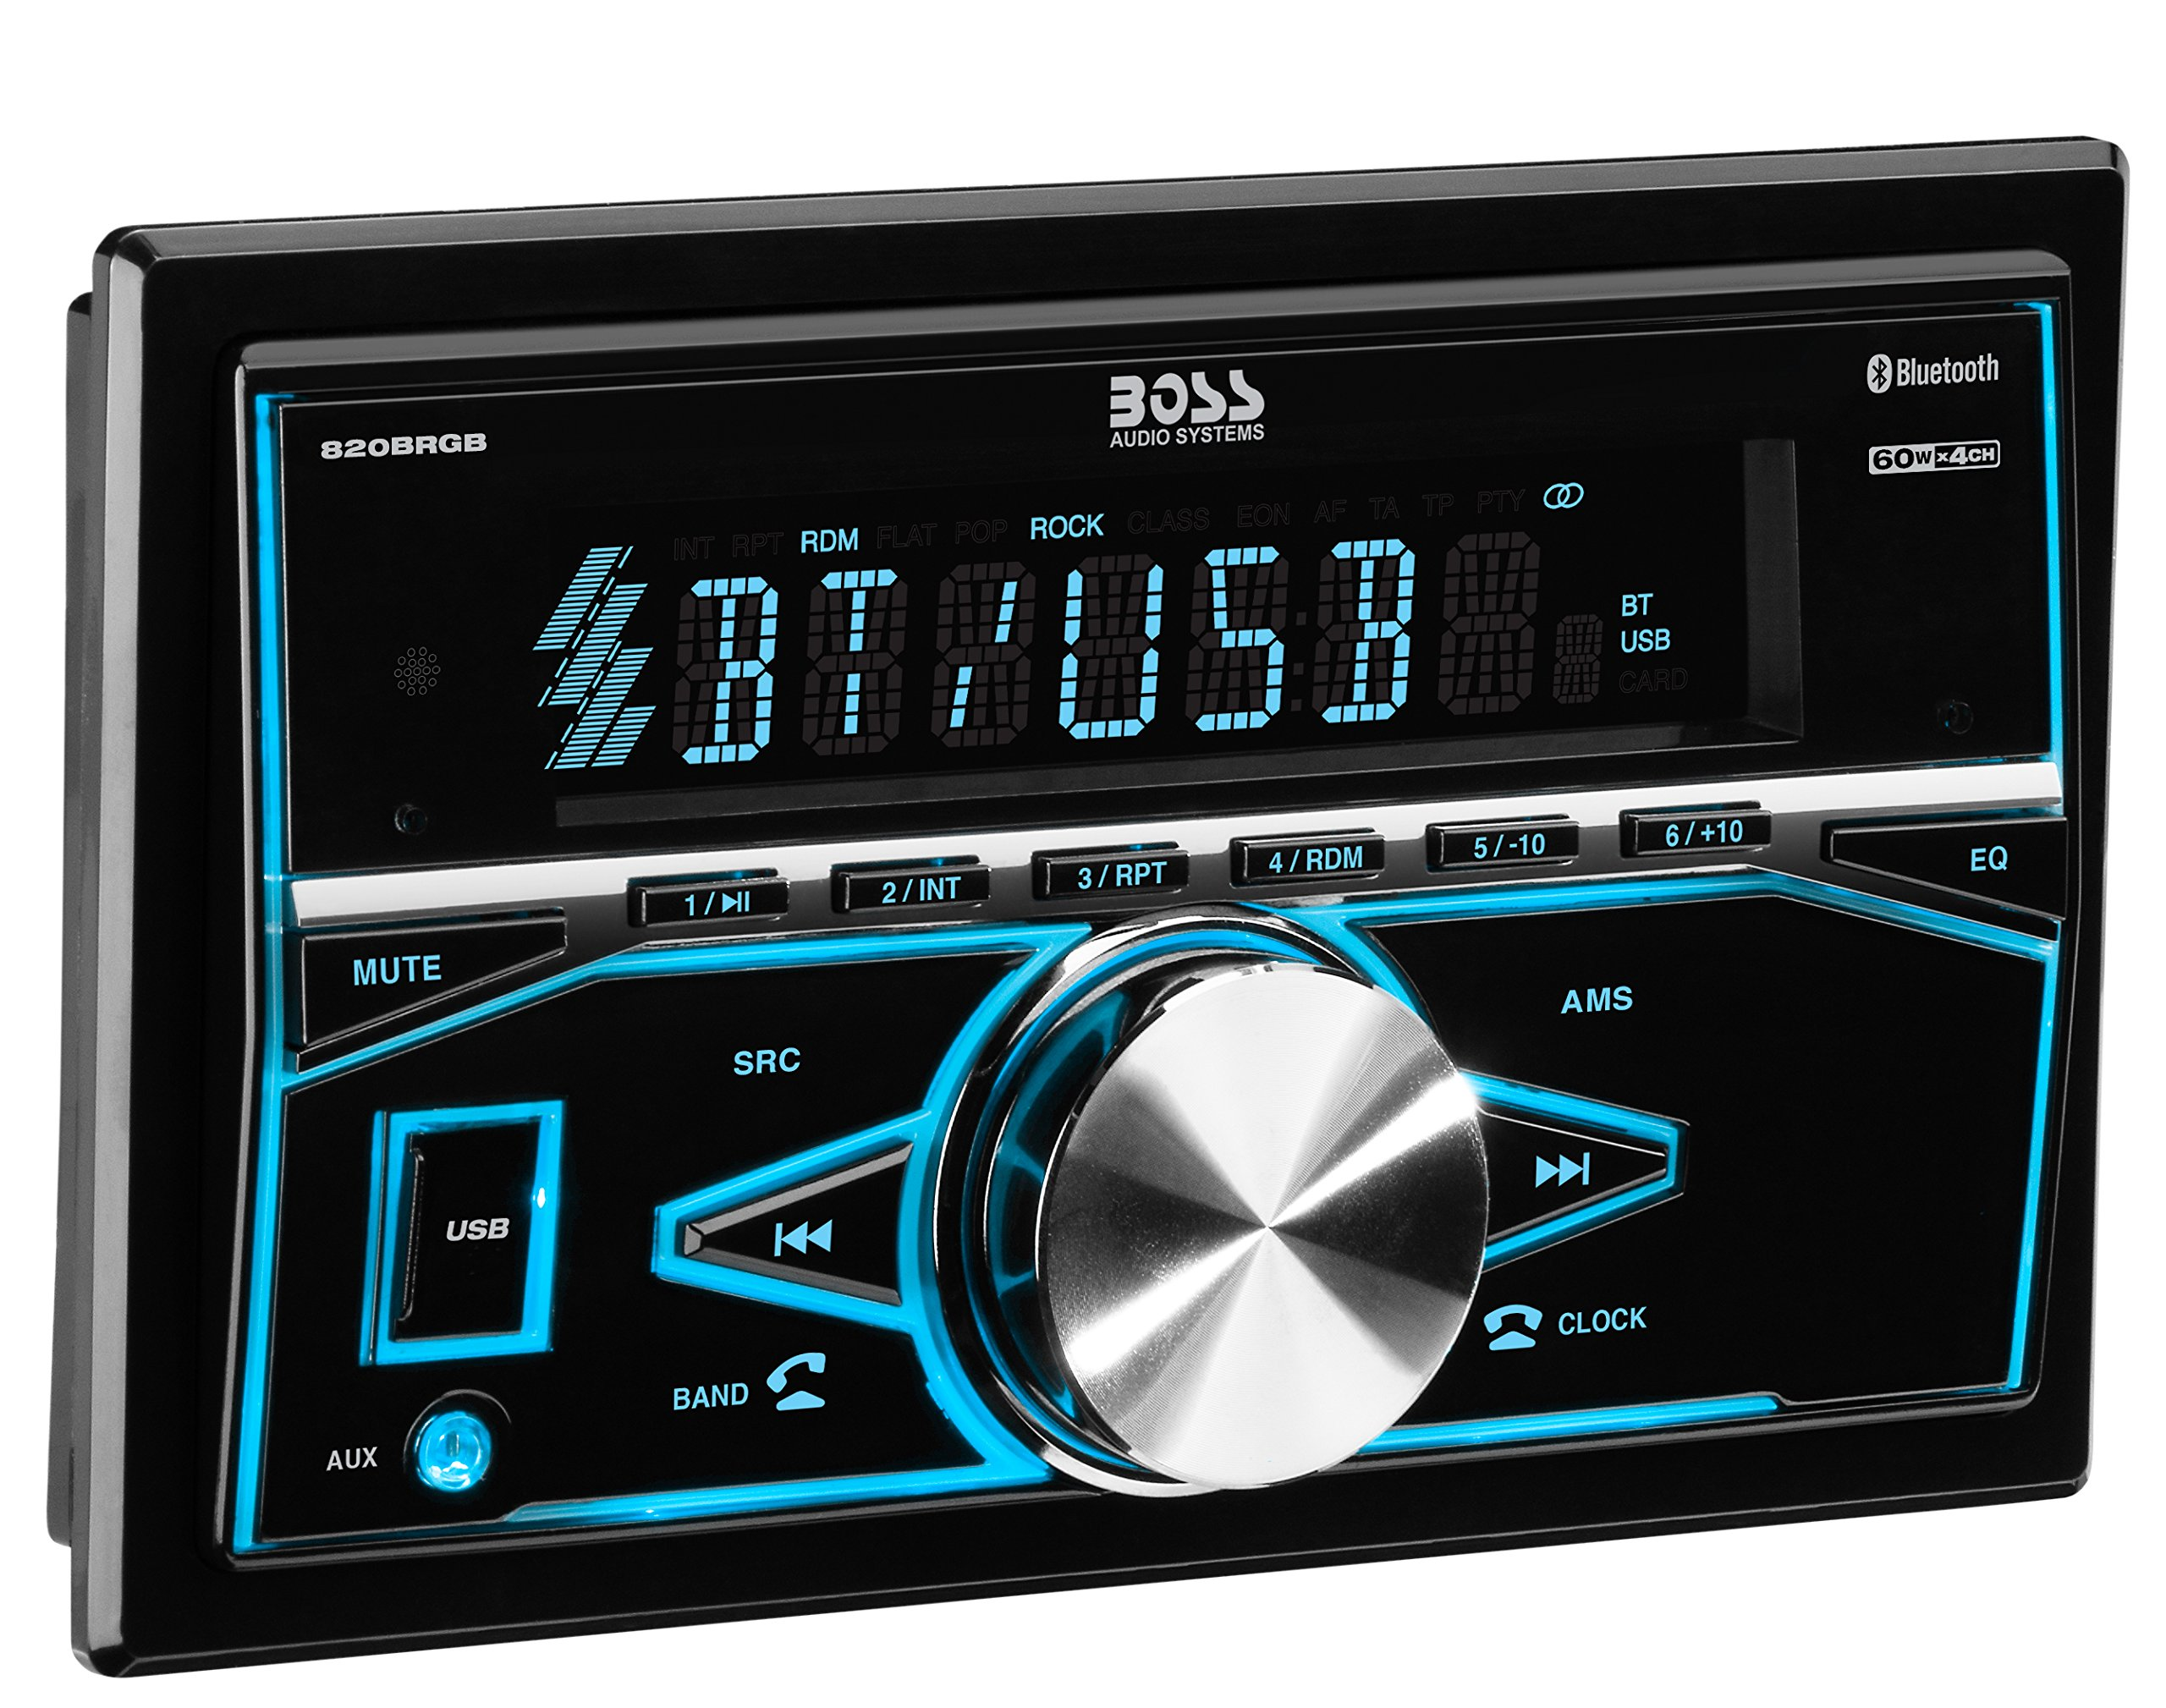 BOSS Audio 820BRGB Multimedia Car Stereo – Double Din, Bluetooth Audio and Hands-Free Calling, MP3 Player, USB Port, AUX Input, AM/FM Radio Receiver, (No CD/DVD), Multi Color Illumination